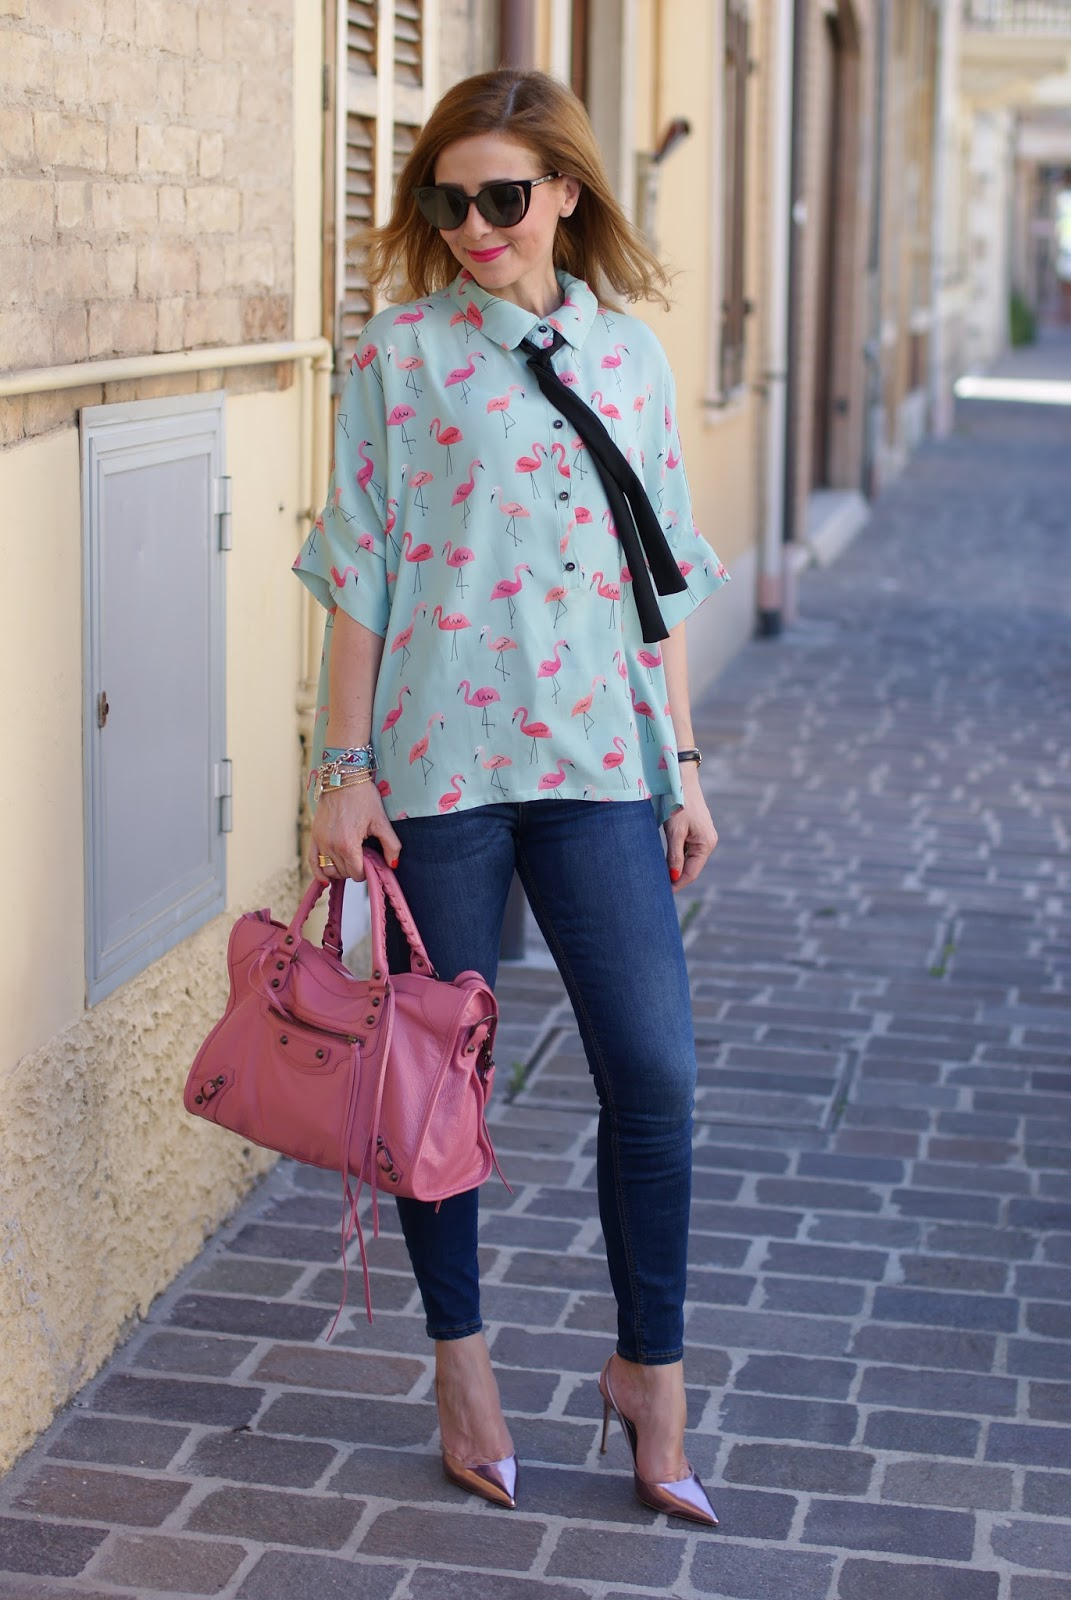 Flamingo print shirt and Le Silla metallic pink slibgback stiletto shoes on Fashion and Cookies fashion blog, fashion blogger style